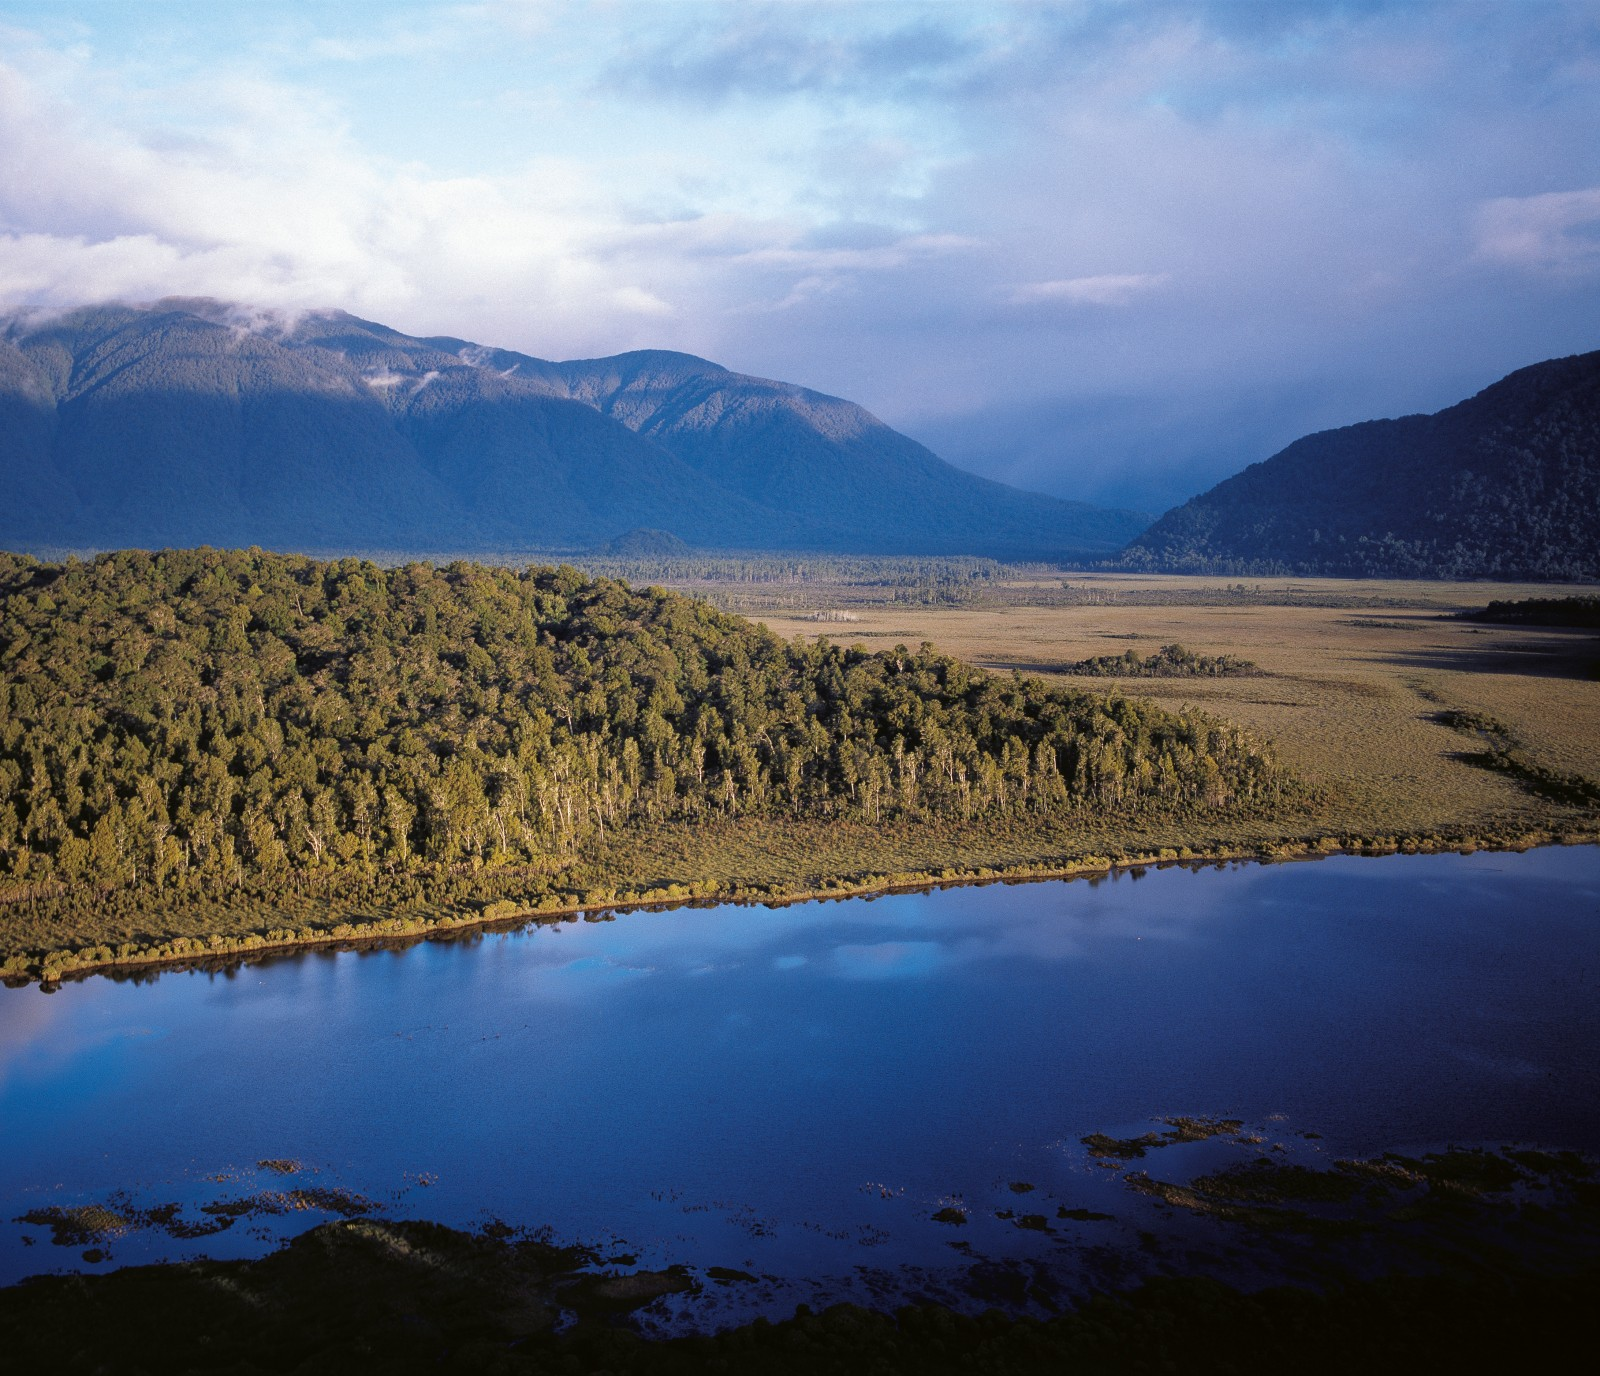 Rainfall in the mountains may exceed 8 m a year, and the district's rivers drop 50 million tons of rock a year into the sea. Wetlands around the Maori River north of Haast are typical of the district.